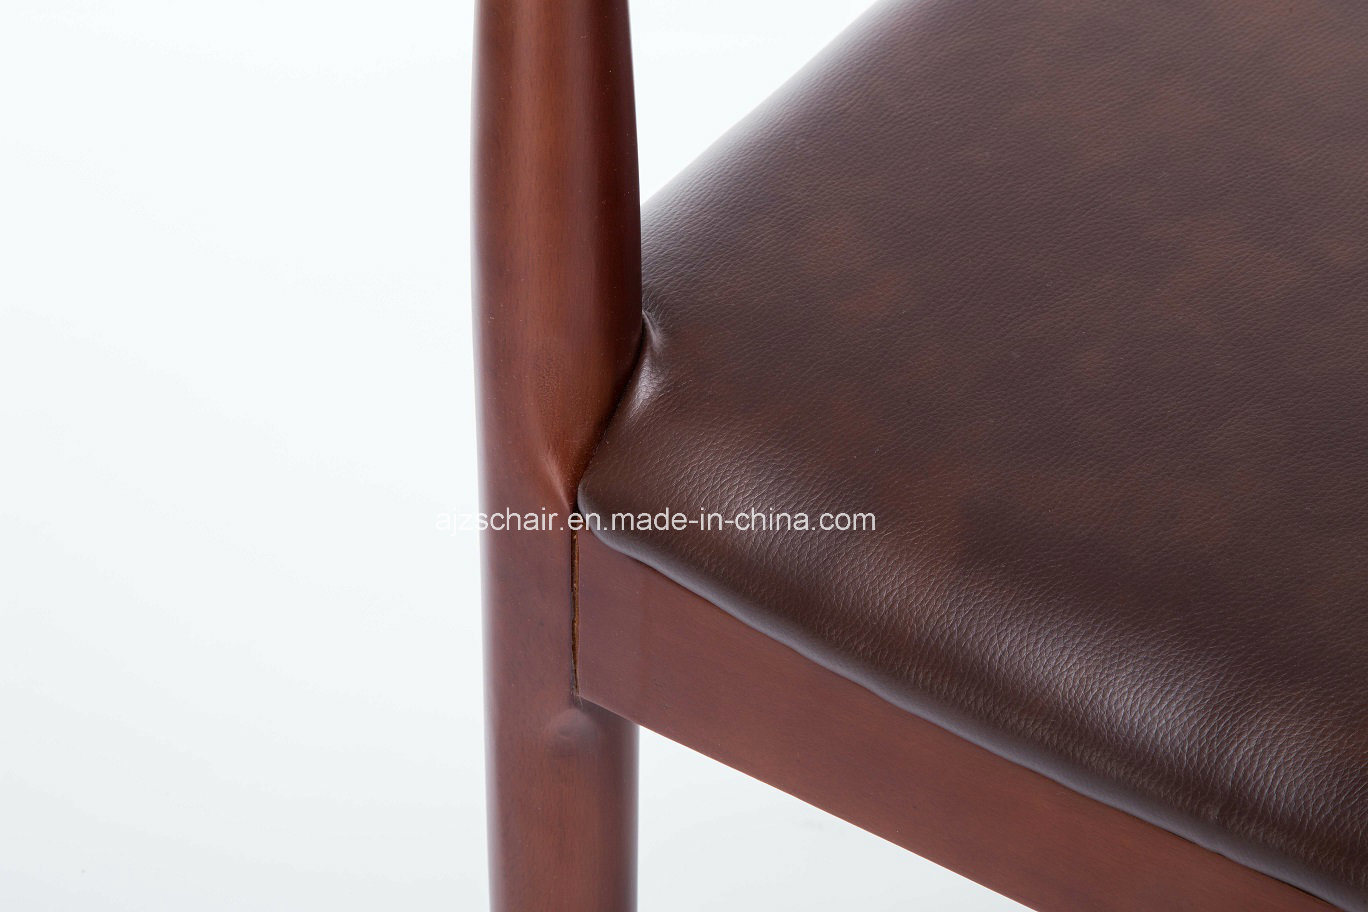 Modern Solid Wood Restaurant Ox Horn Chair/Wood Restaurant Chair Ox Chair Zs-T-N01